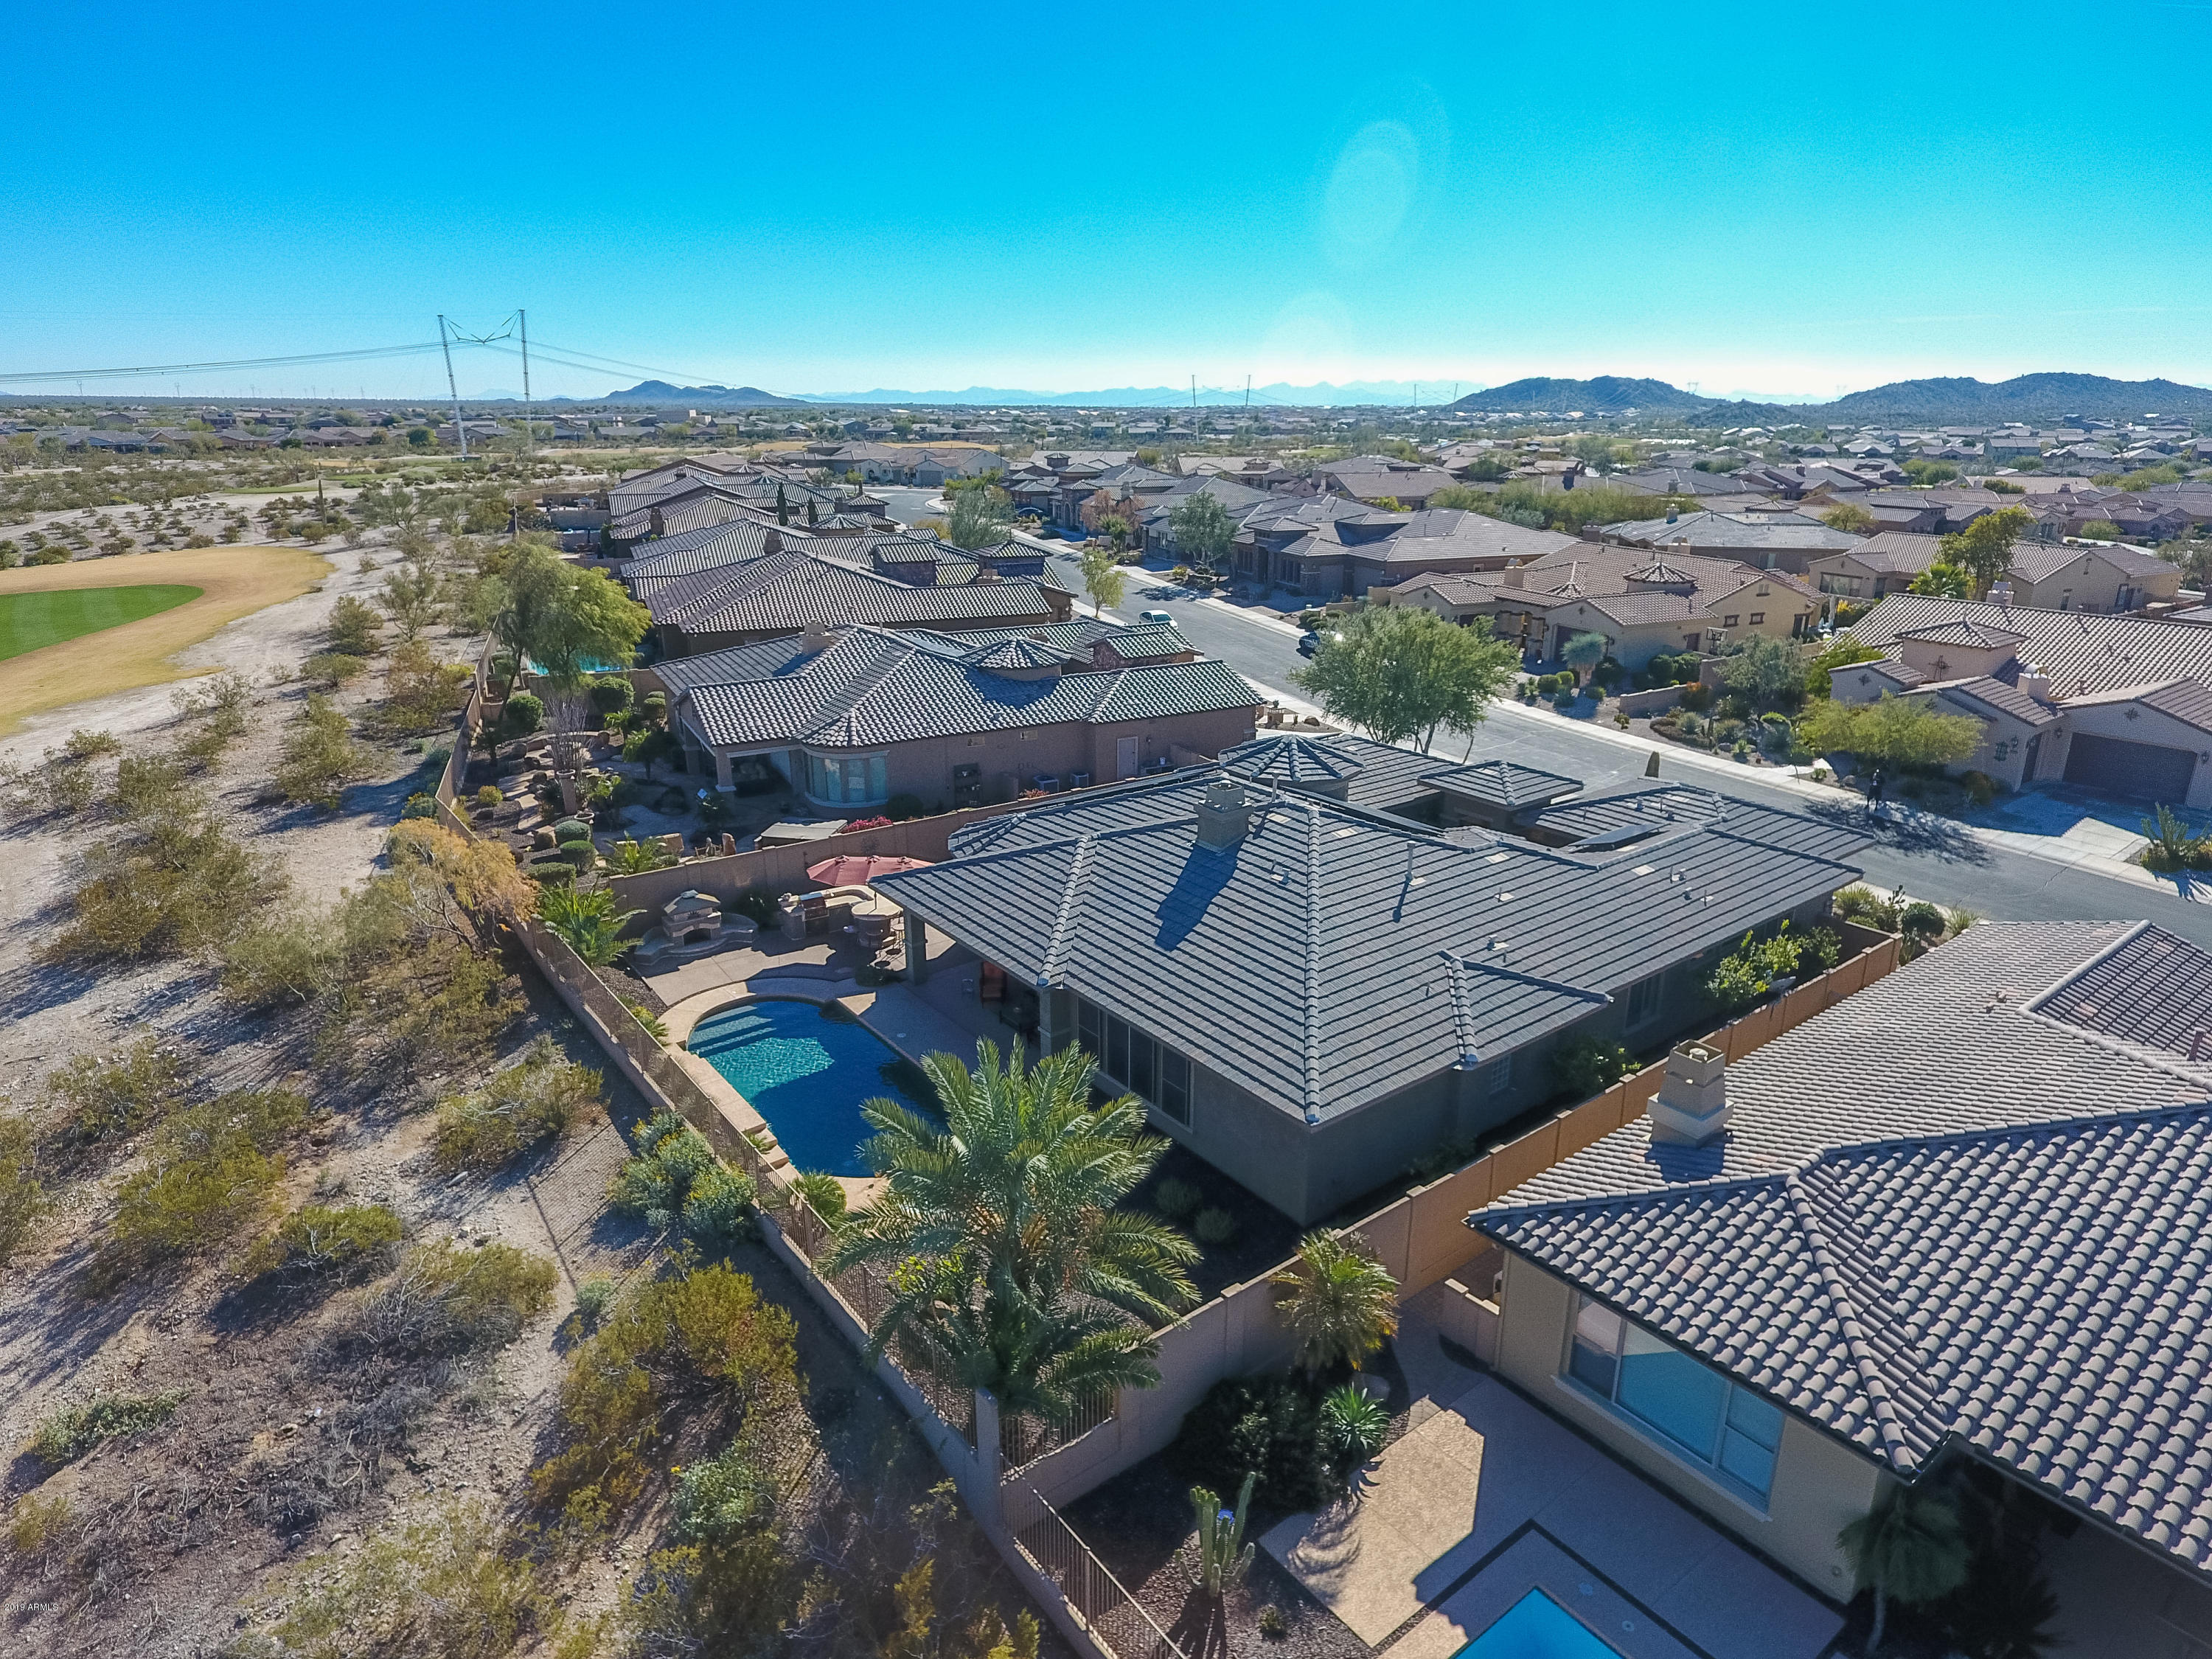 MLS 5867647 17960 W NARRAMORE Road, Goodyear, AZ 85338 Goodyear AZ Lake Subdivision